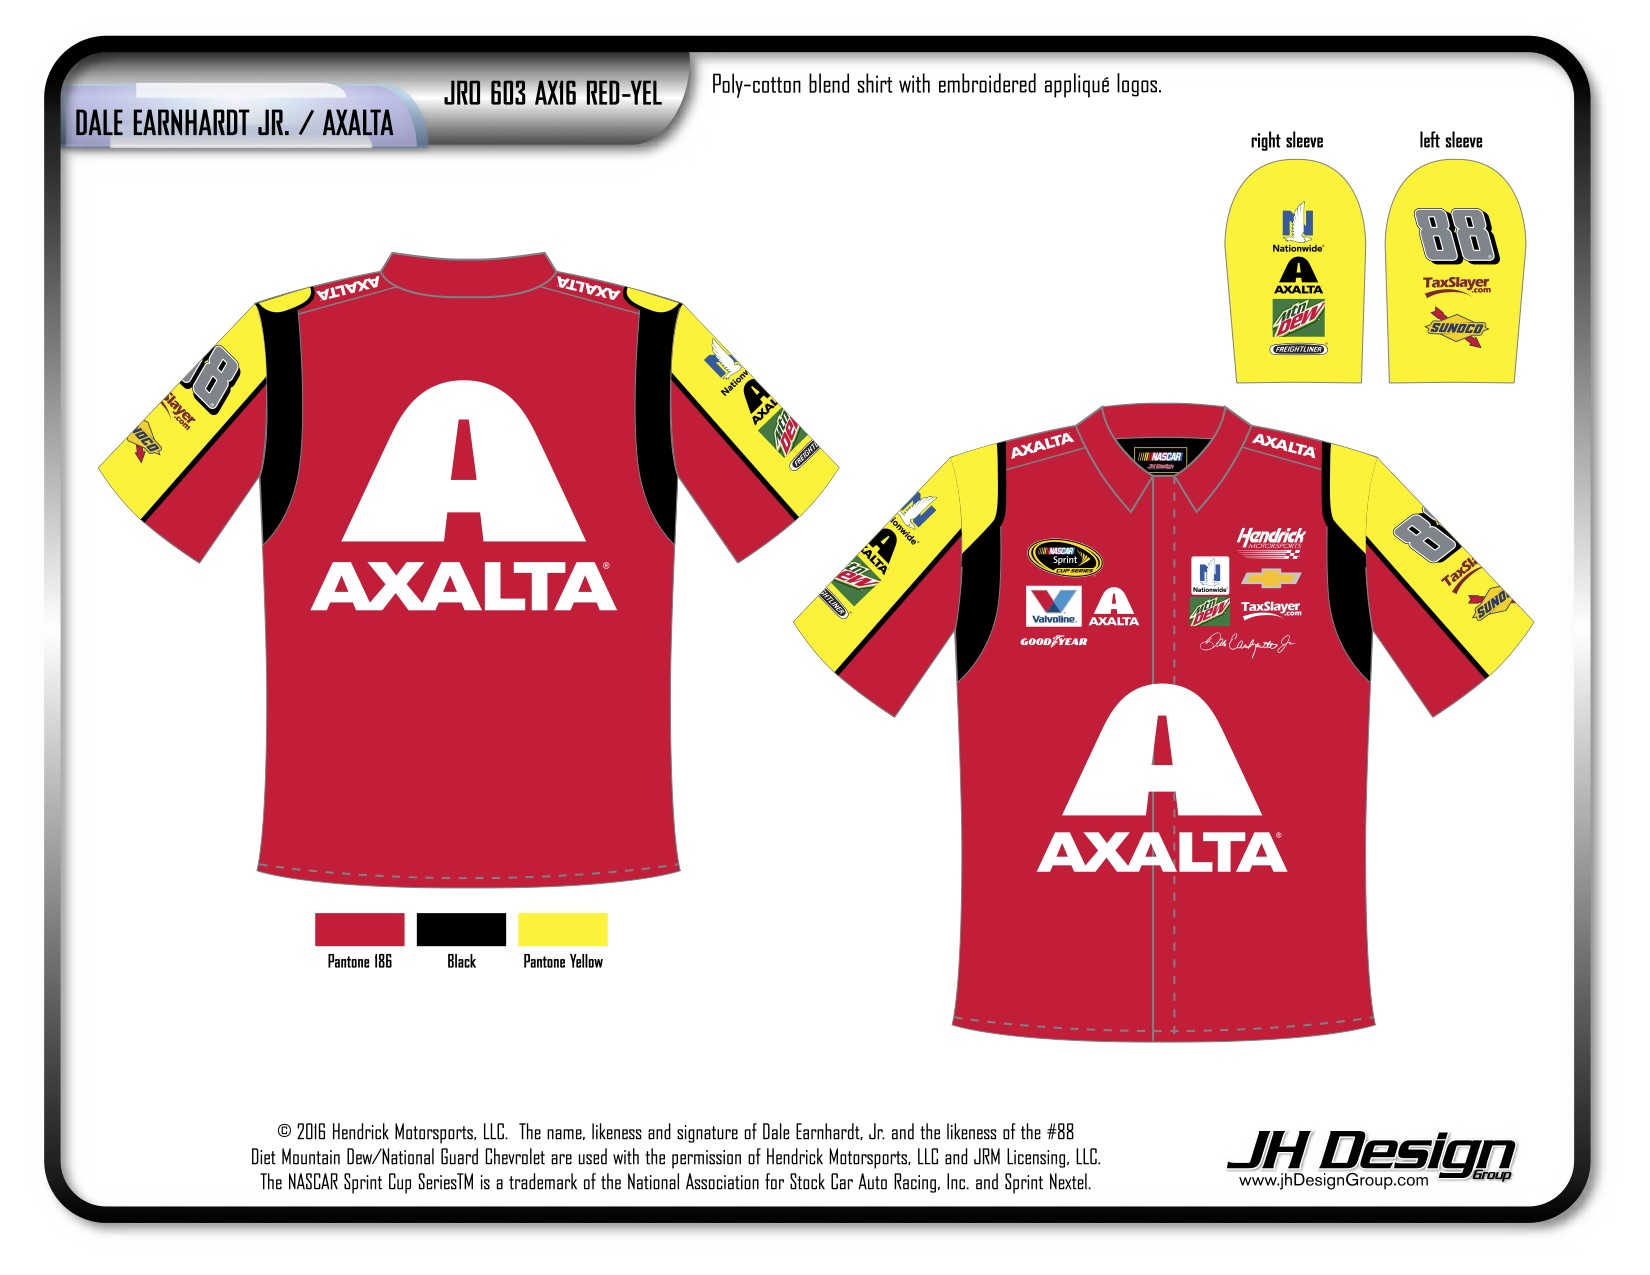 JR0 603 AX16 RED-YEL